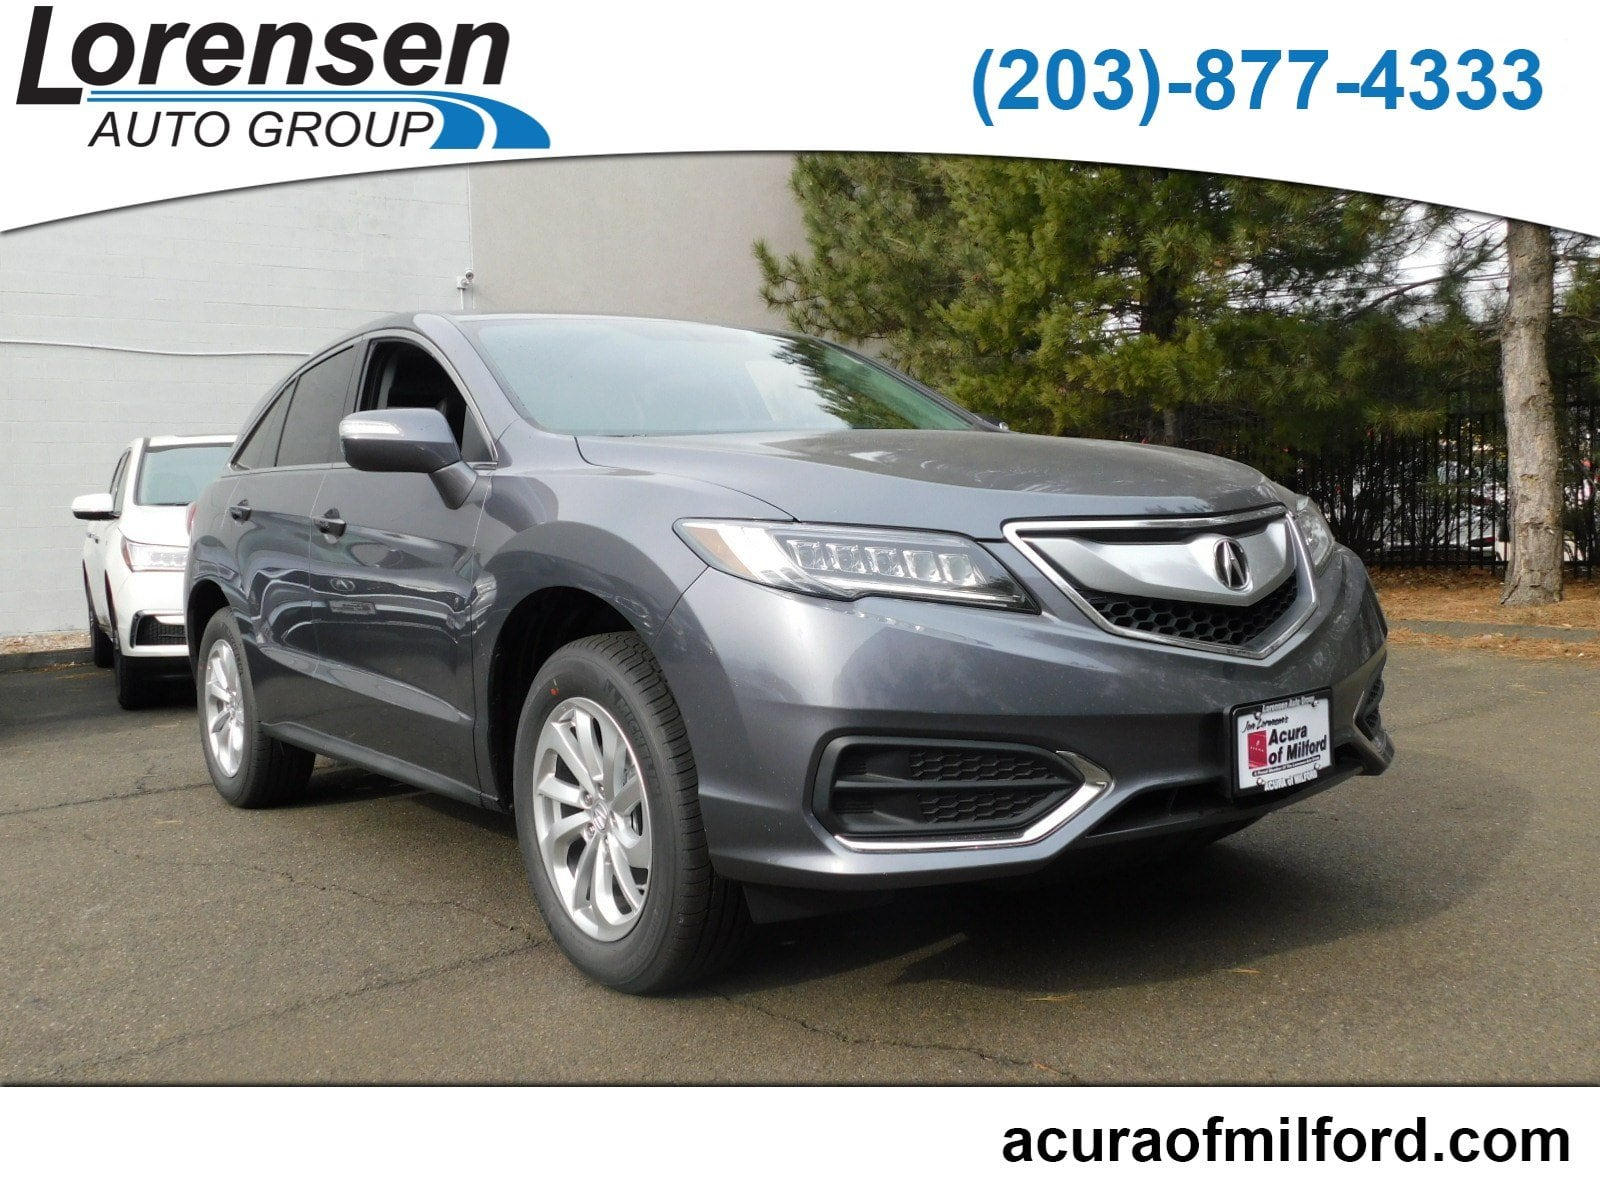 listings cropped grayodmd l rdx acura leasetechs full